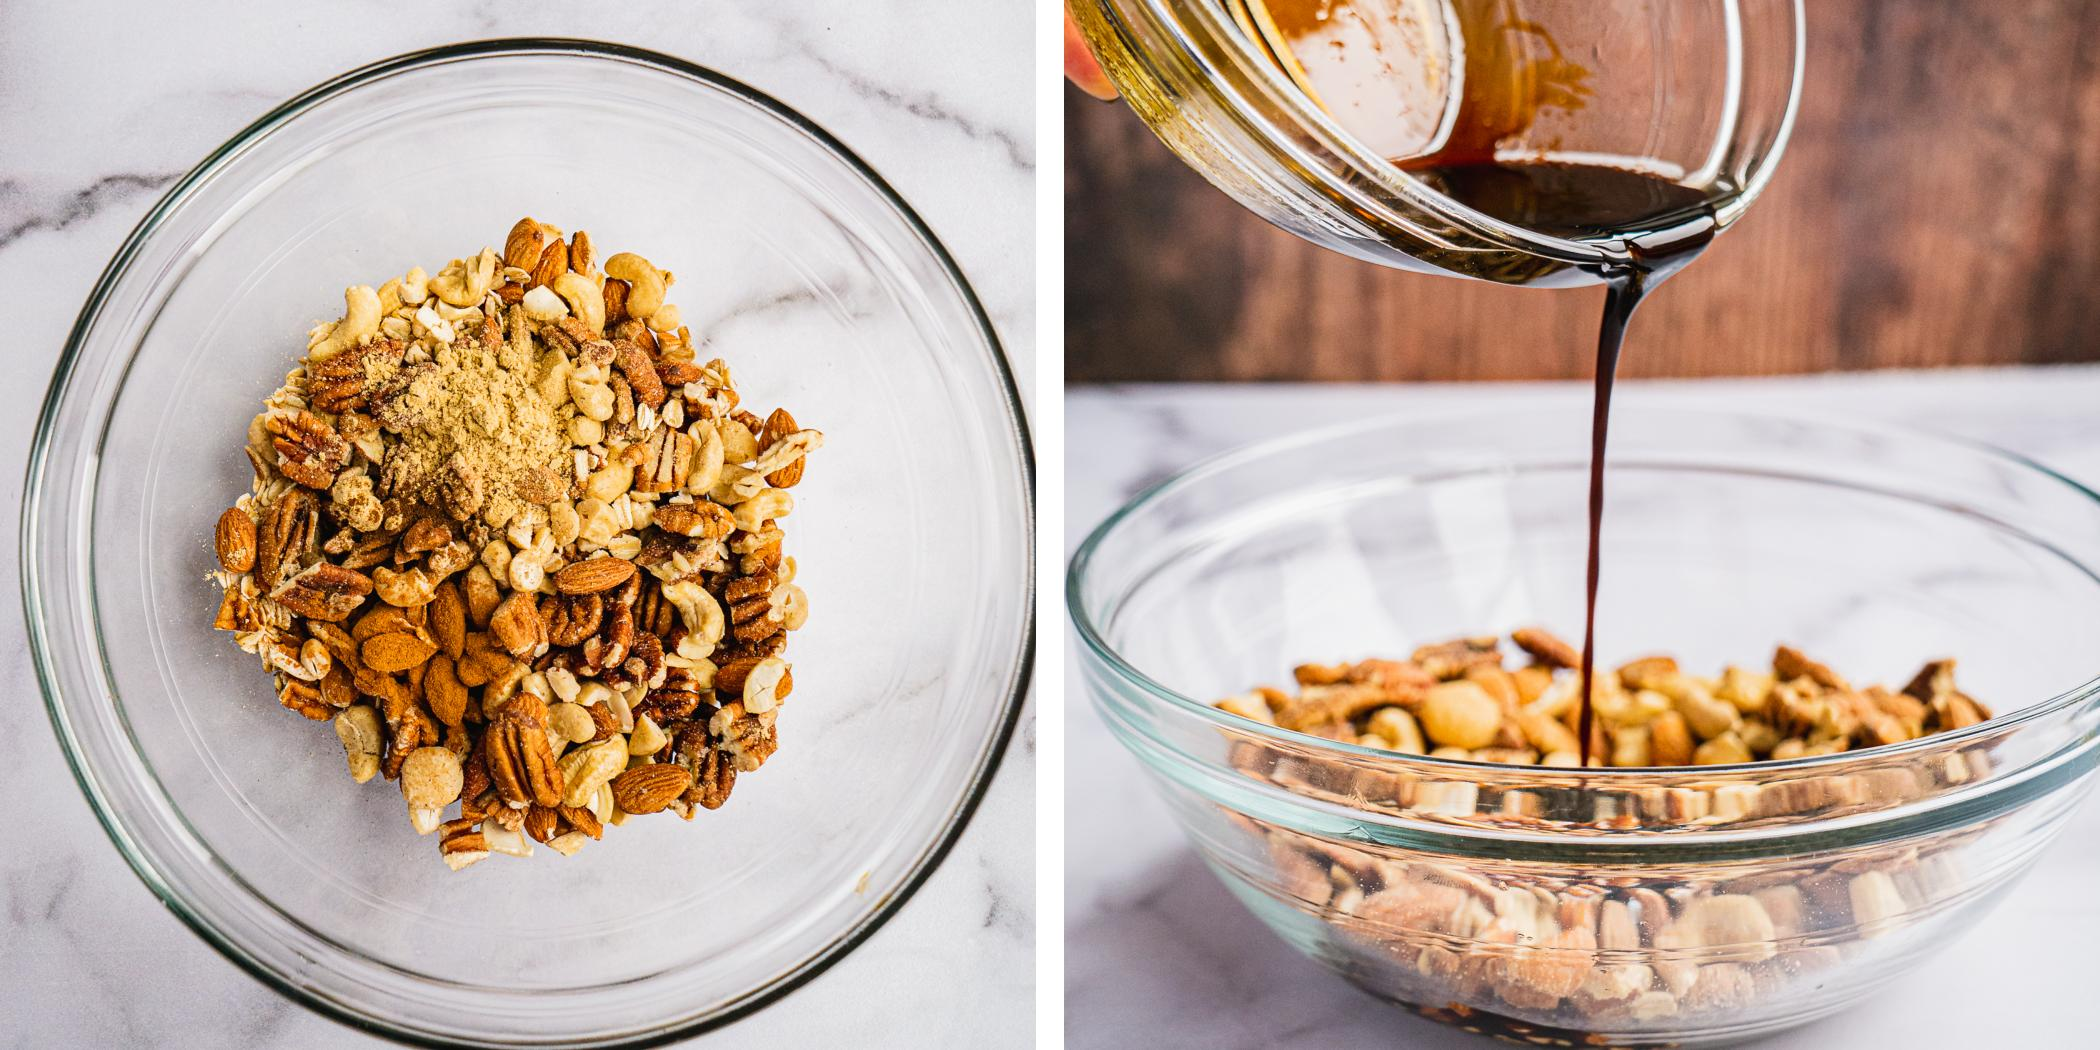 instruction on how to make gingerbread granola. mix the nuts and pour Molassess maple syrup and coconut oil over